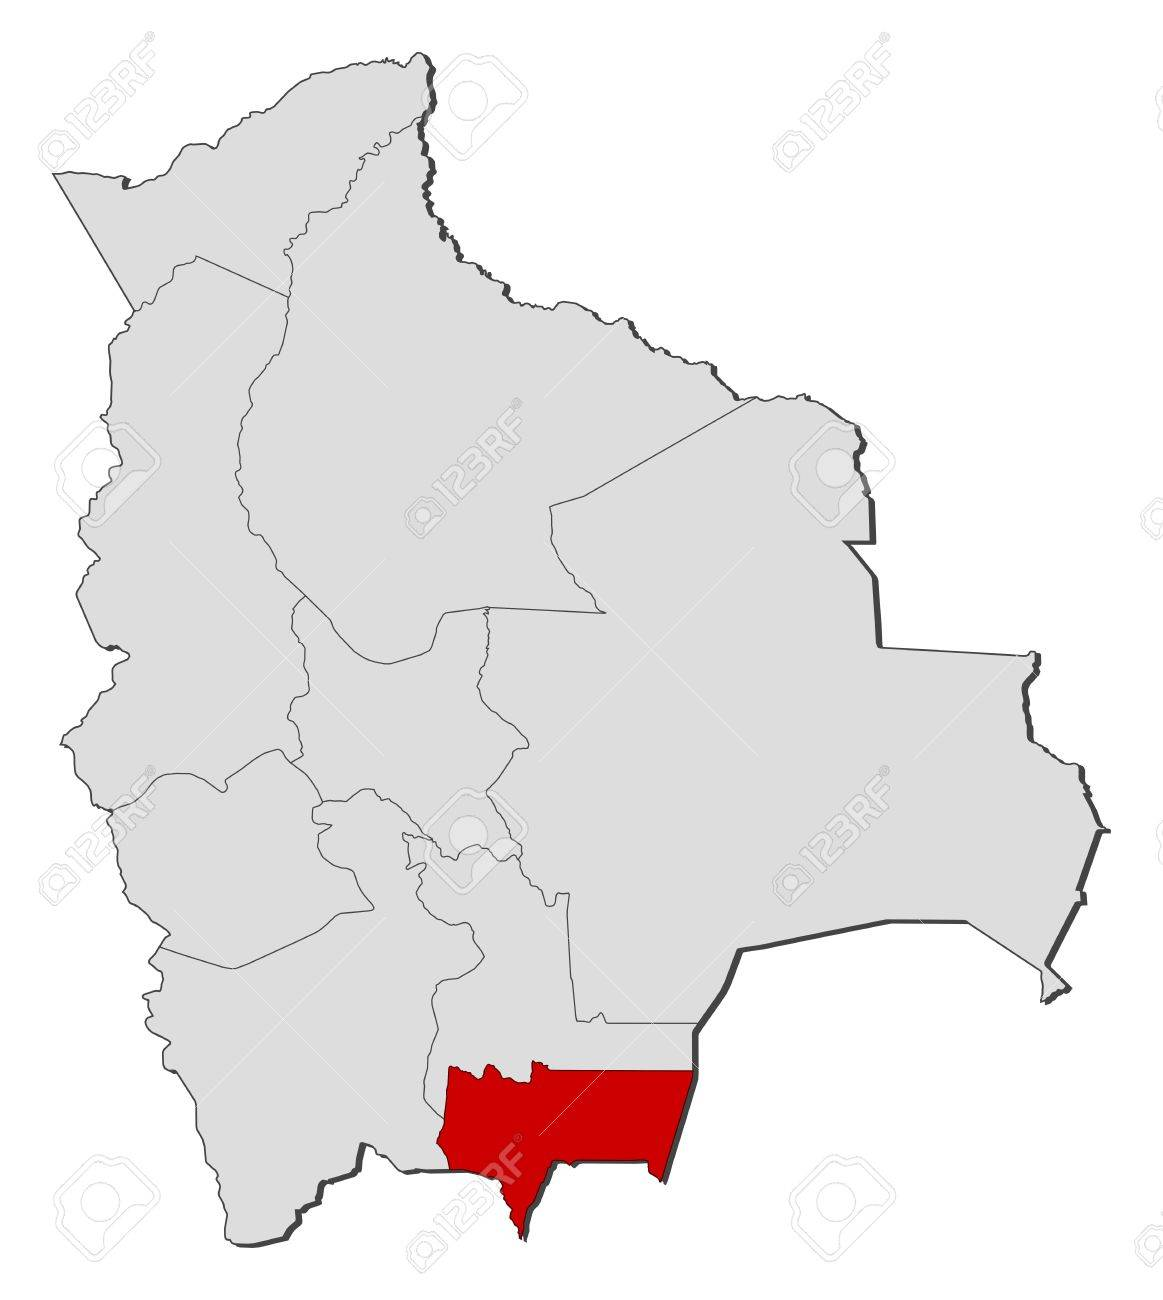 Political Map Of Bolivia With The Several Departments Where Tarija